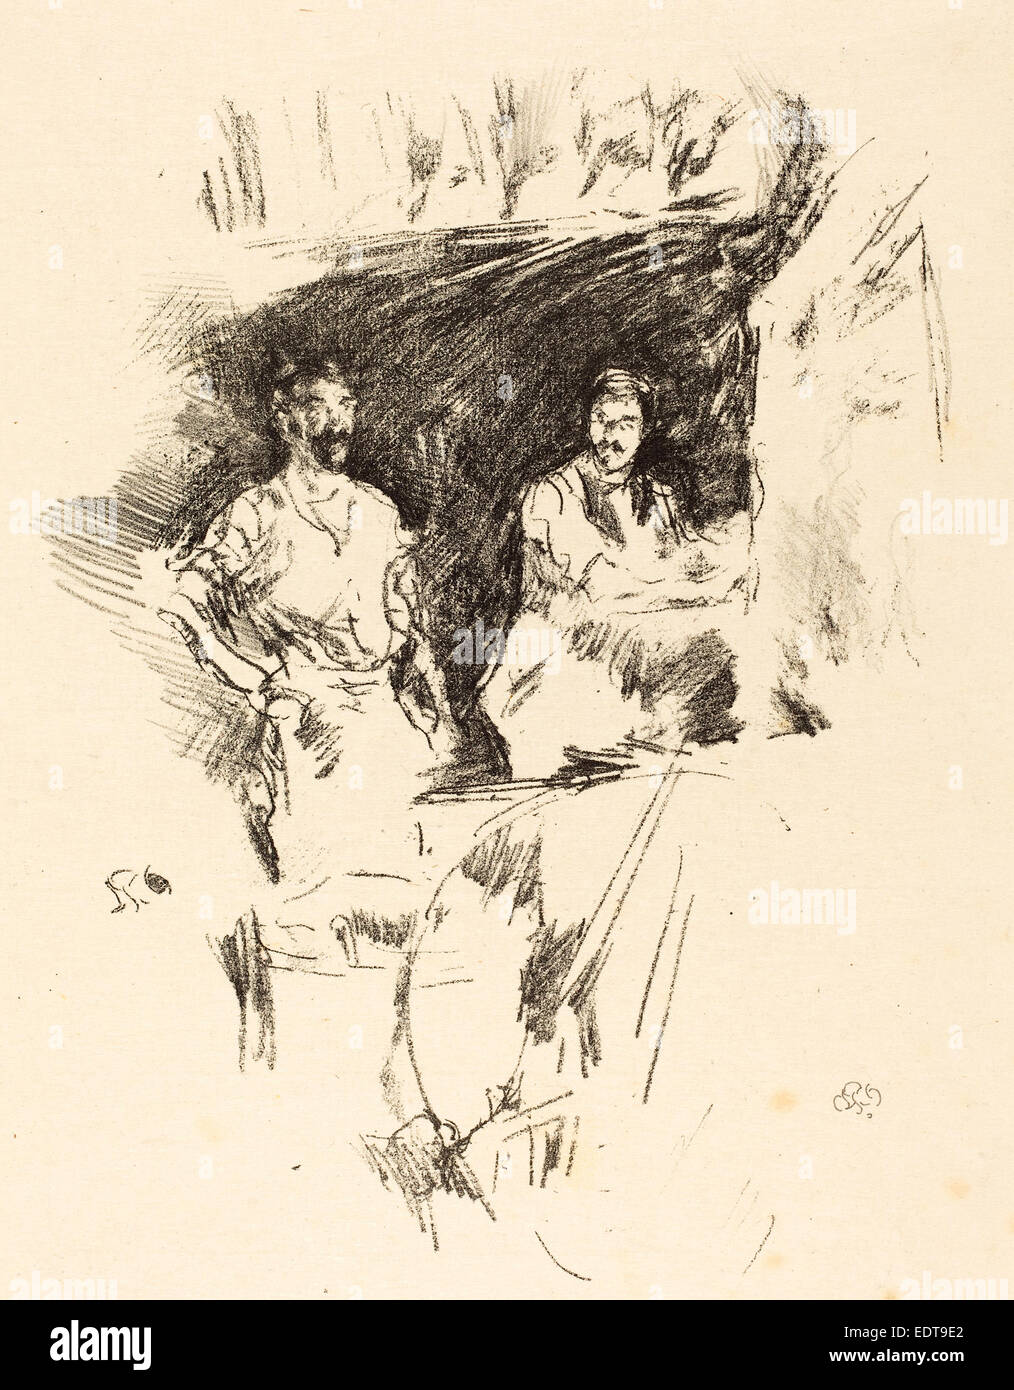 James McNeill Whistler (American, 1834 - 1903), The Brothers, 1895, lithograph - Stock Image